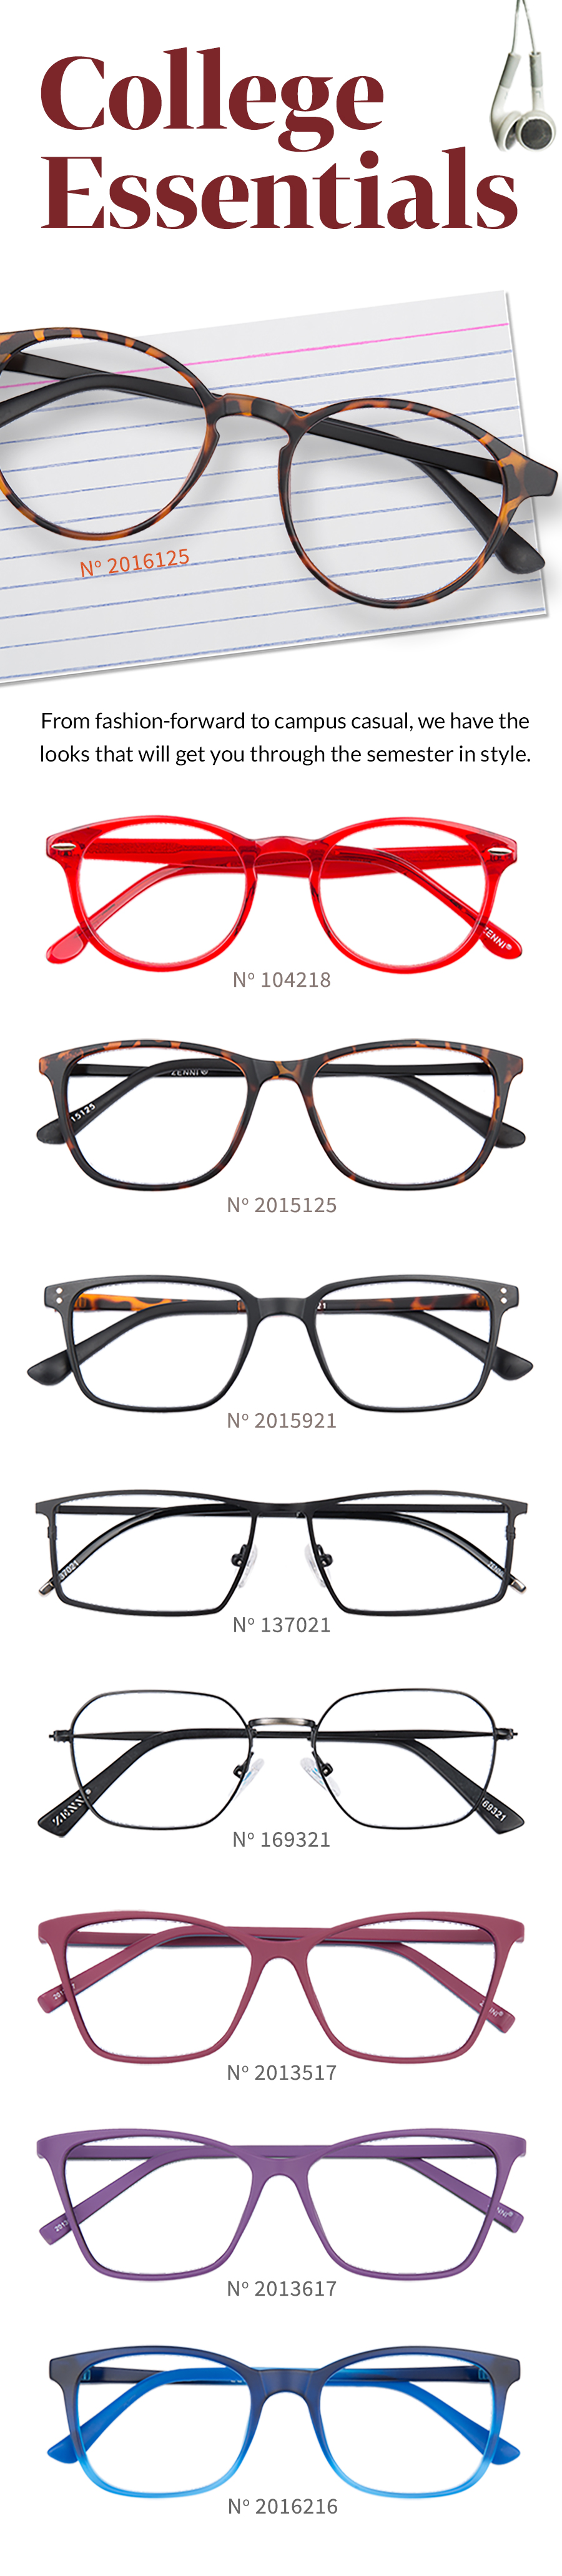 b62e9995bf7 Head to class with this year s most stylish glasses.